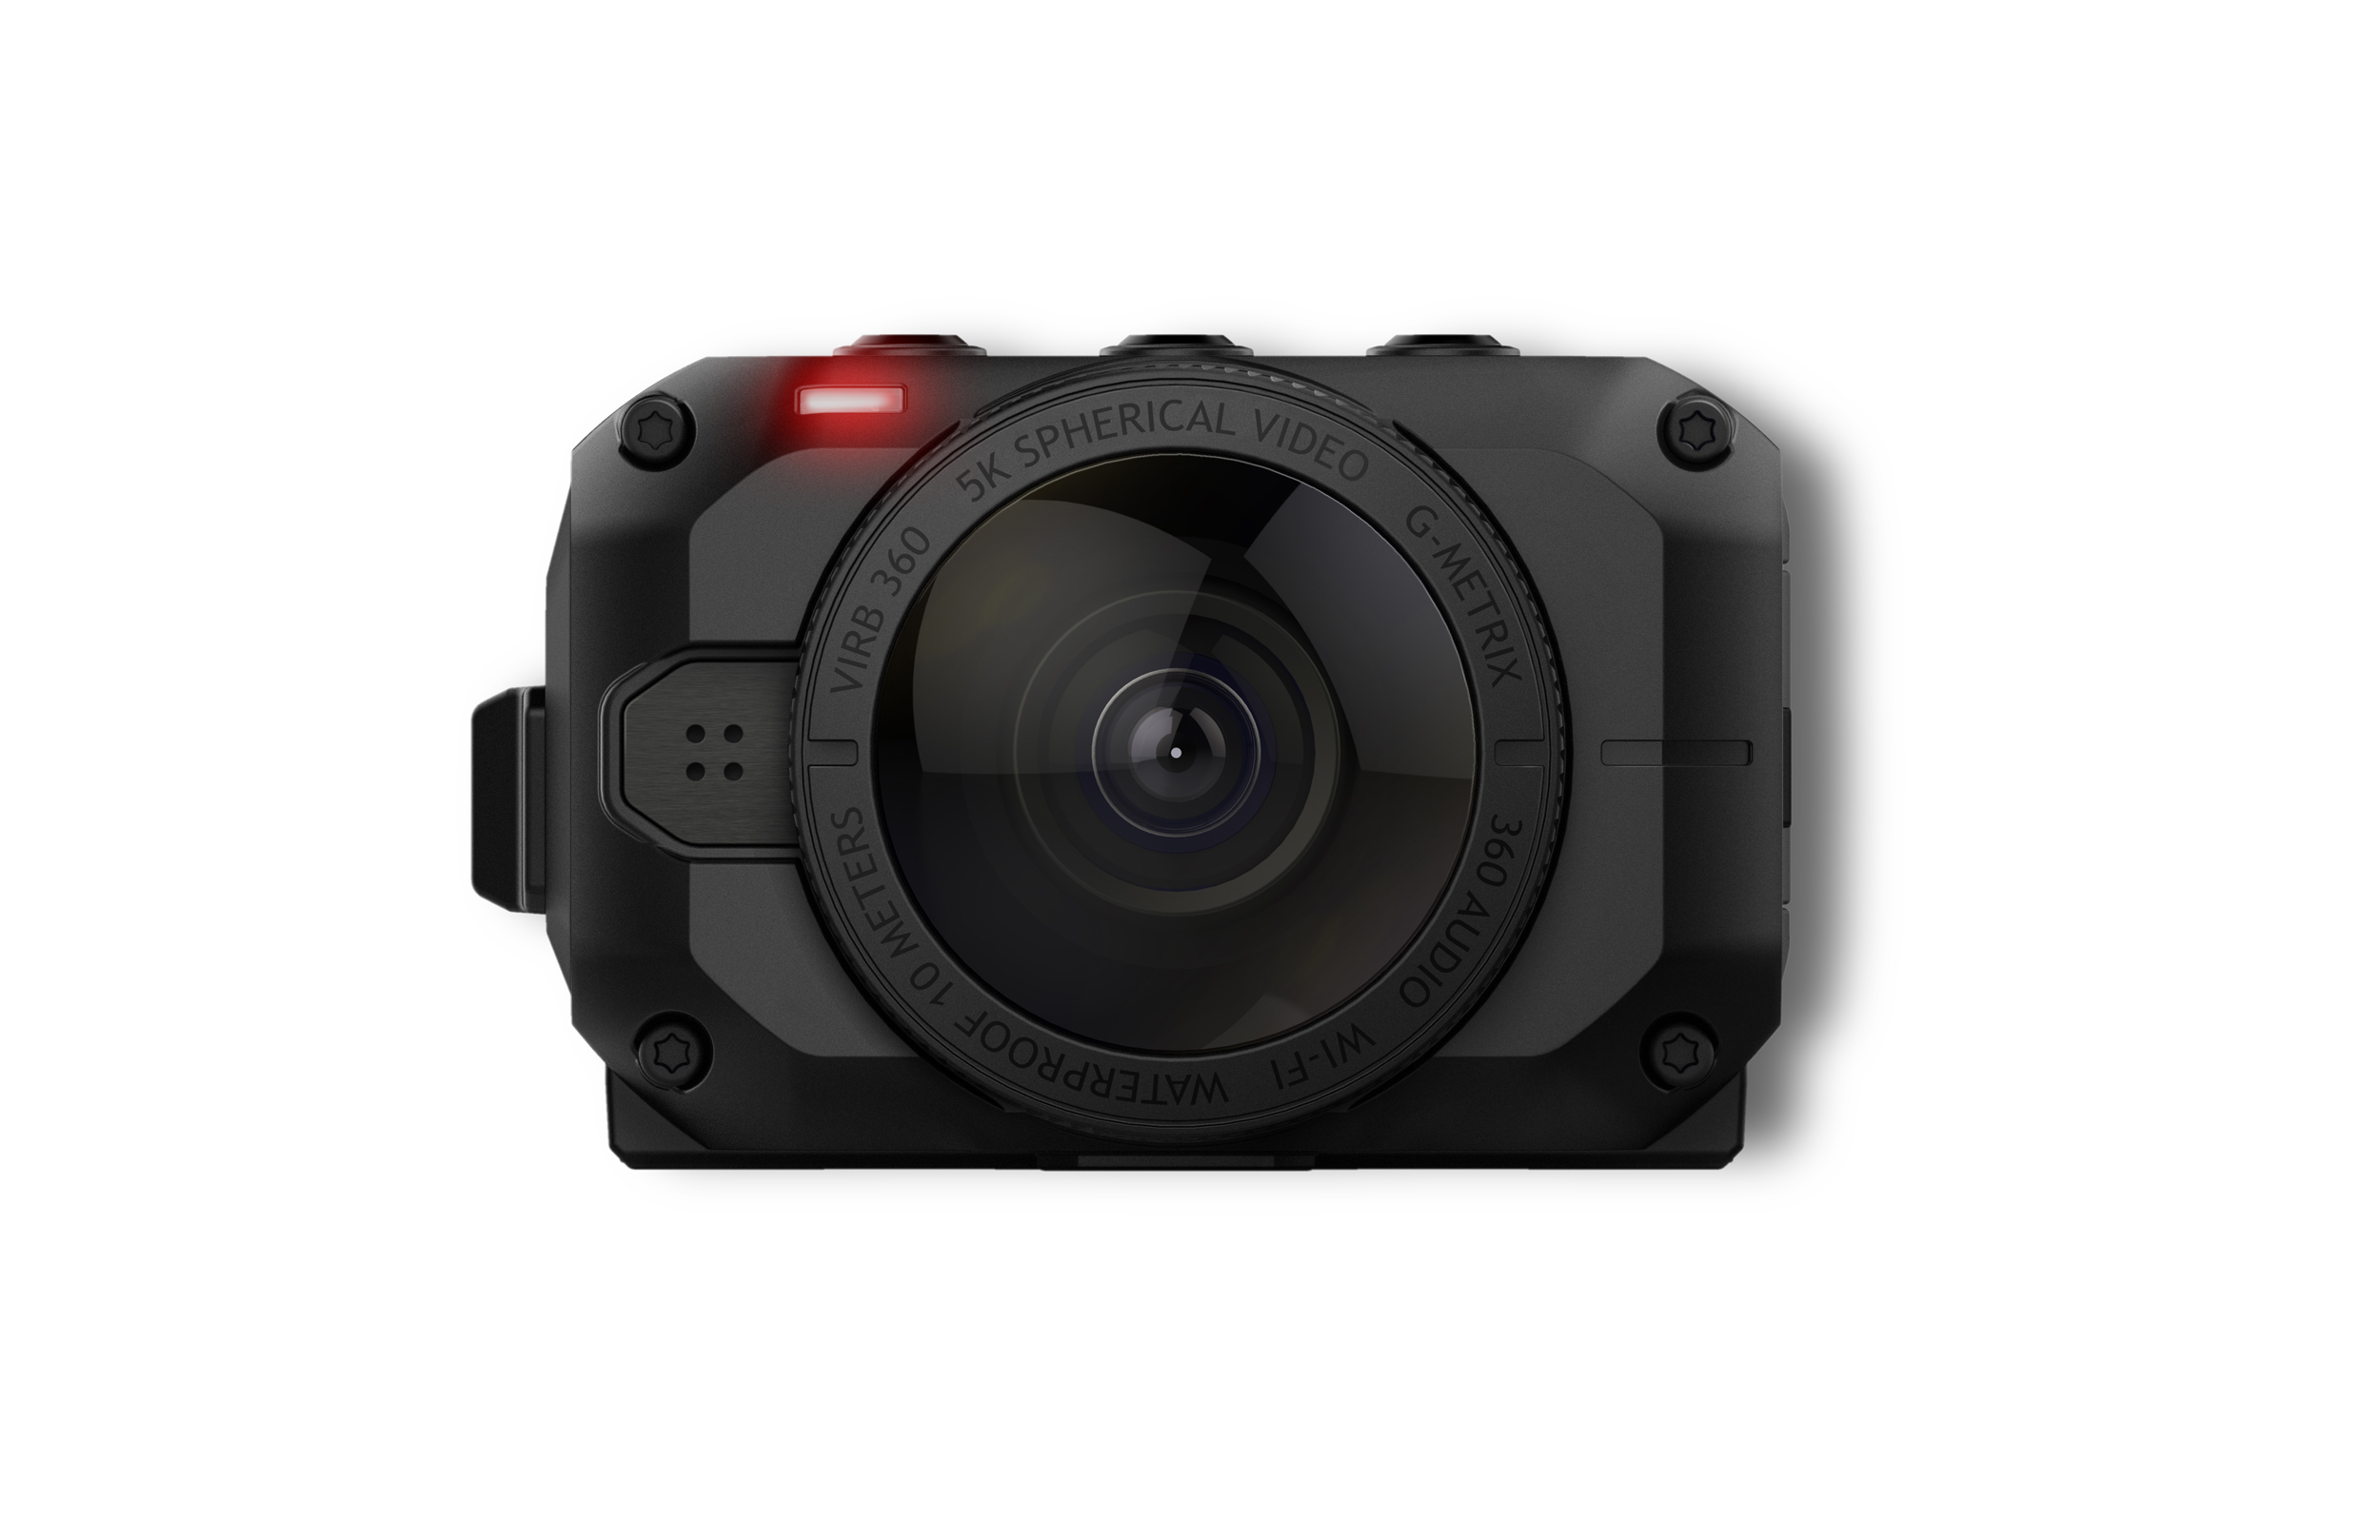 garmin s new 360 degree camera is waterproof and records. Black Bedroom Furniture Sets. Home Design Ideas